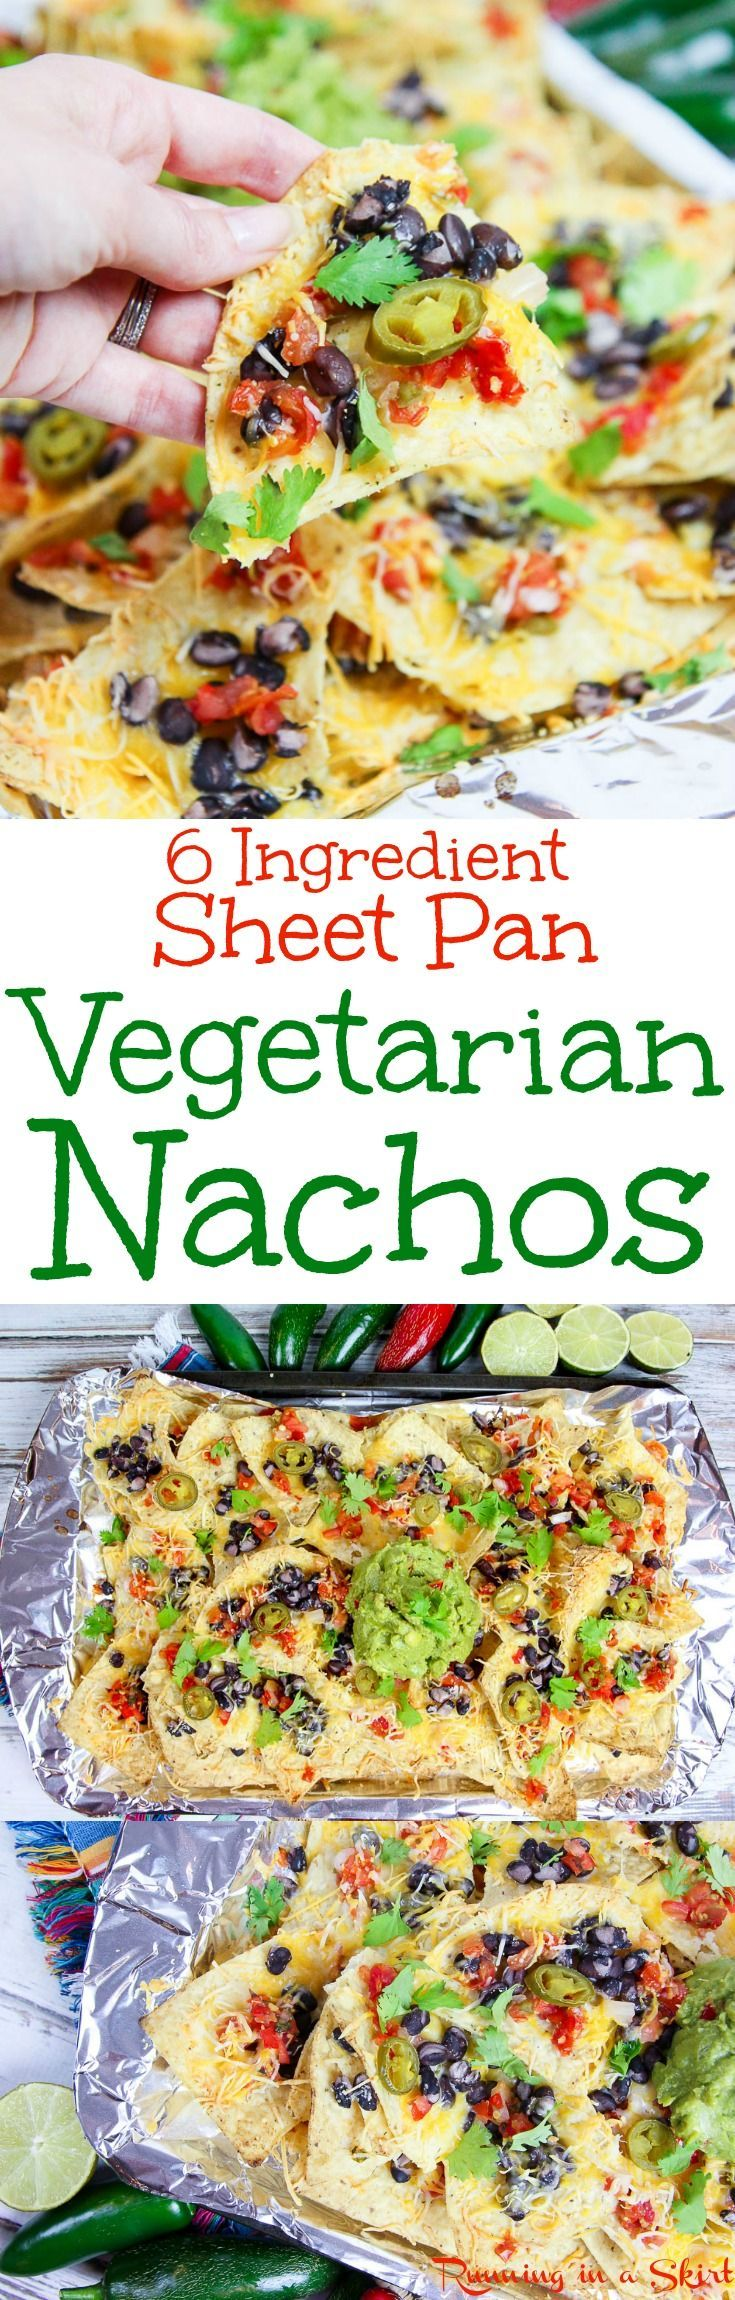 The Best 6 Ingredient Easy Vegetarian Nachos recipe with healthy swaps! A simple appetizer loaded with black beans, chips, cheese, avocado and pico de gallo / salsa. Fun for the Super Bowl, game day snacks or football parties. Also could be a delicious for Meatless Monday dinners. Cooked on a sheet pan and foil for easy serving and no clean up! / Running in a Skirt